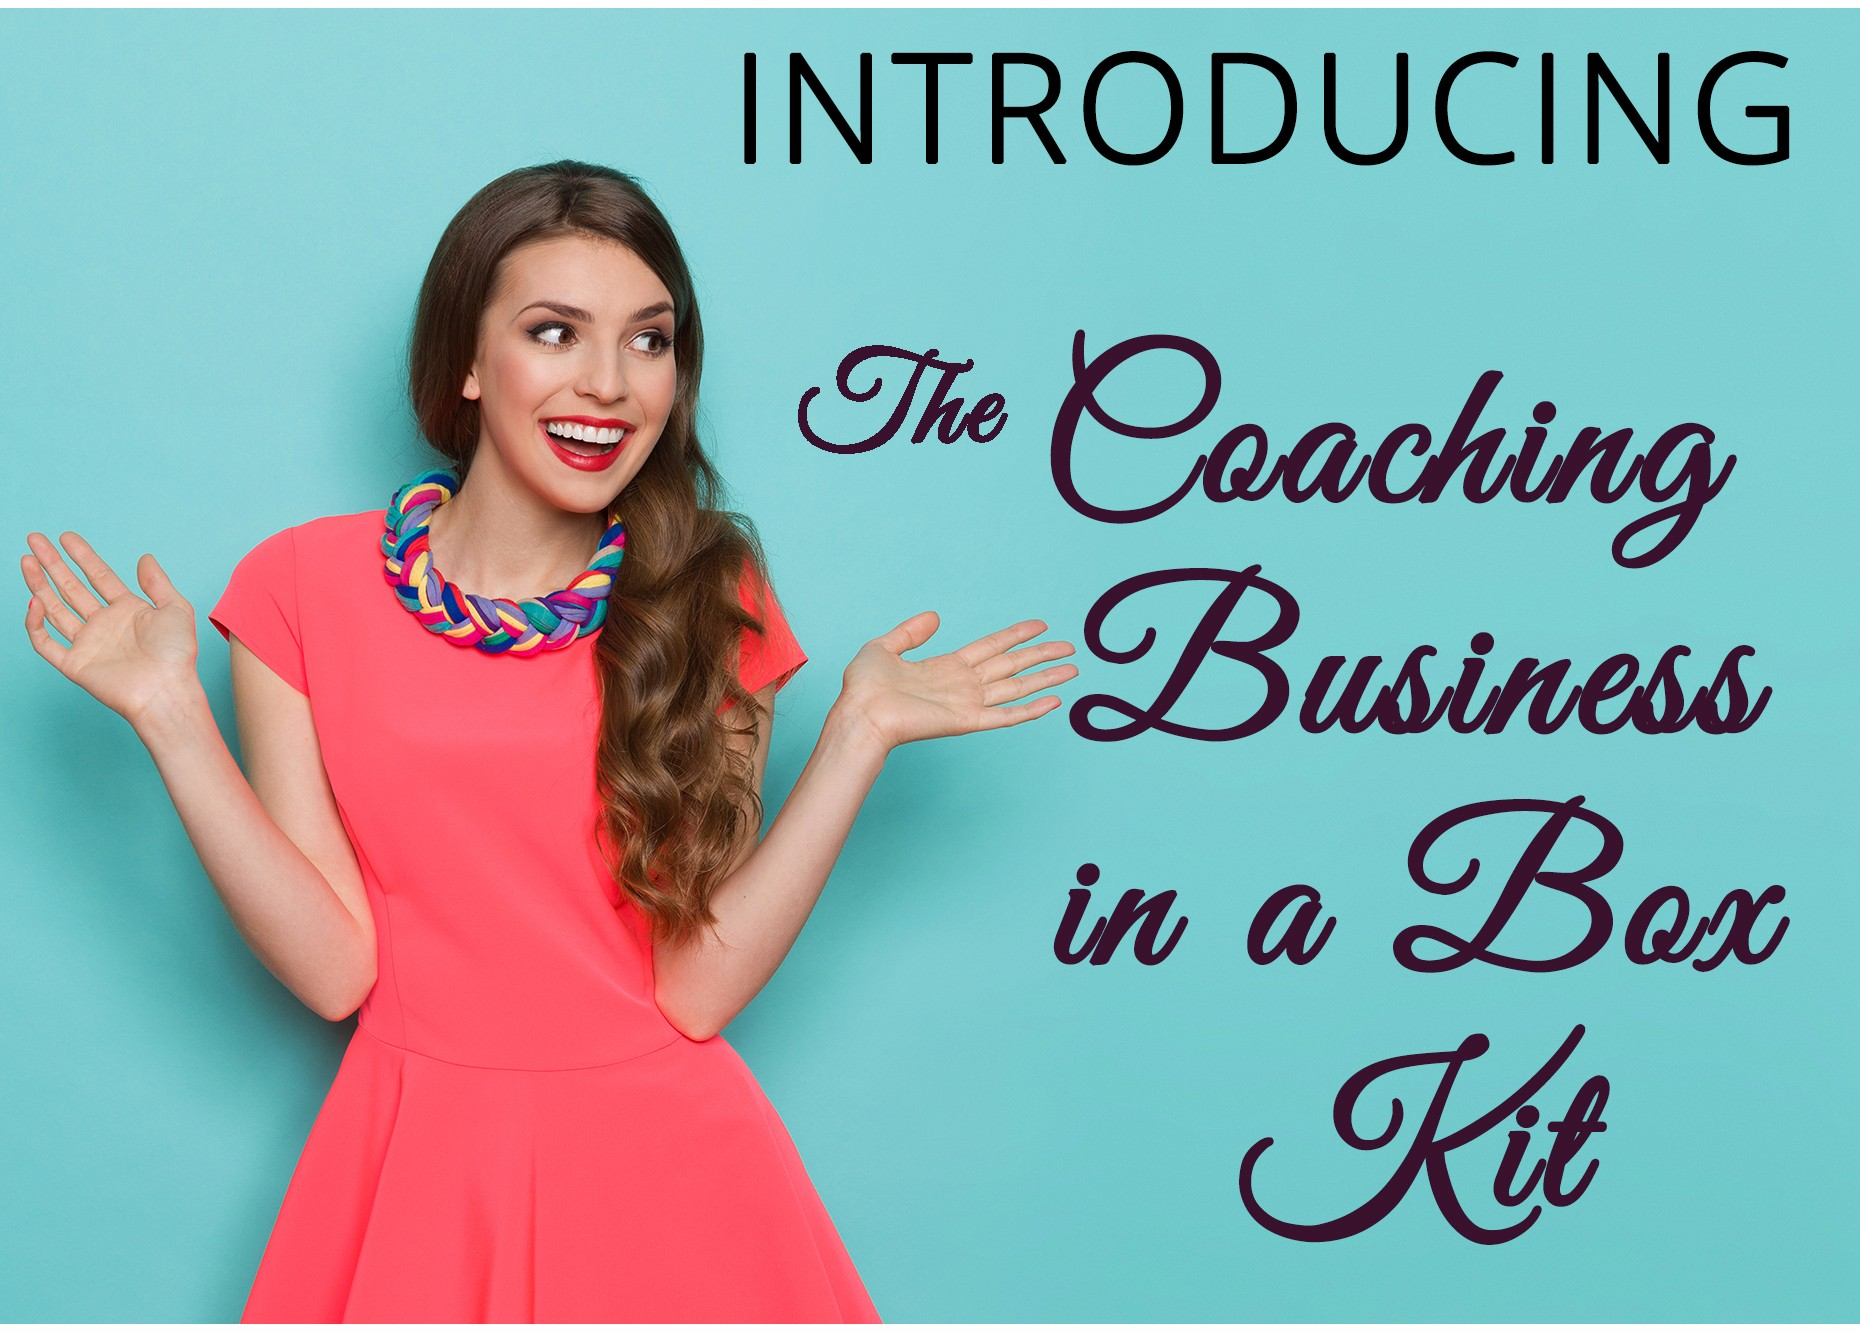 Coaching Business in a Box Kit Templates